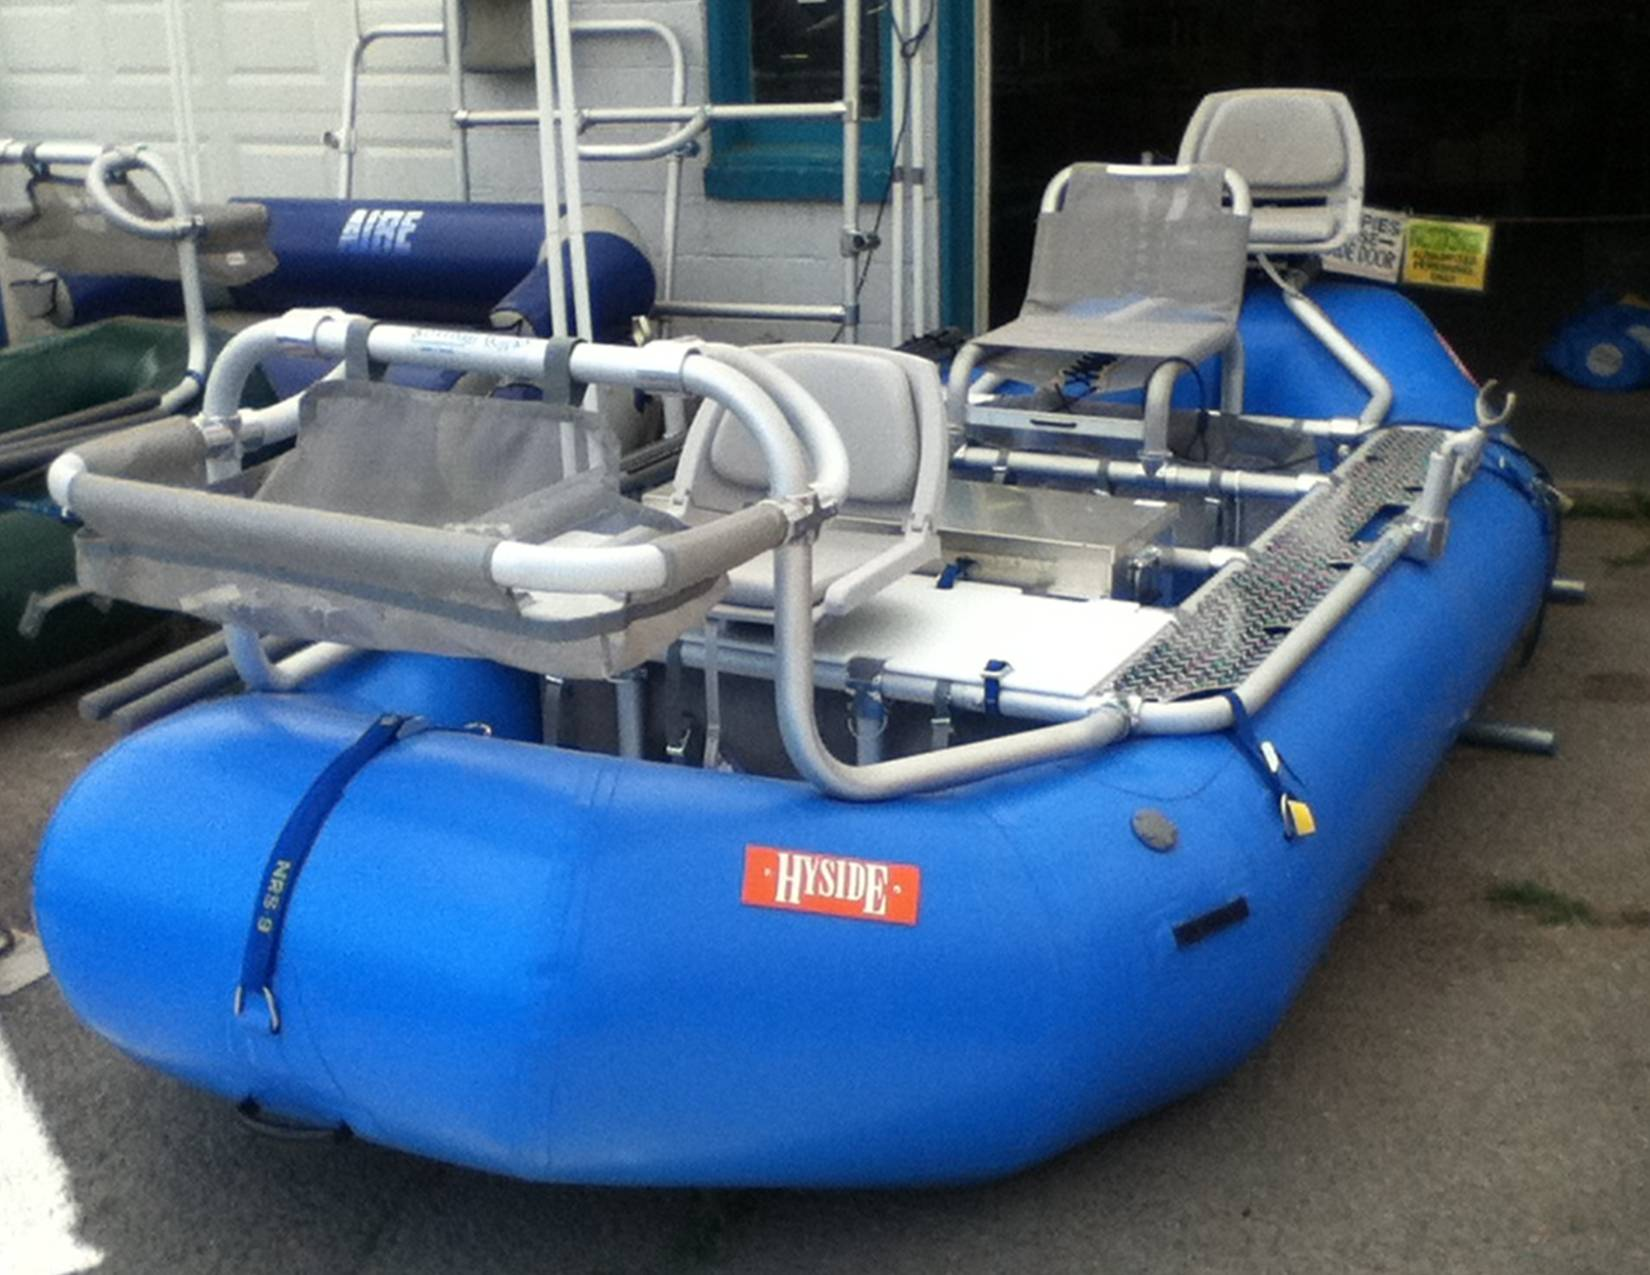 Click image for larger version  Name:Buzz's boat.jpg Views:94 Size:189.3 KB ID:10623